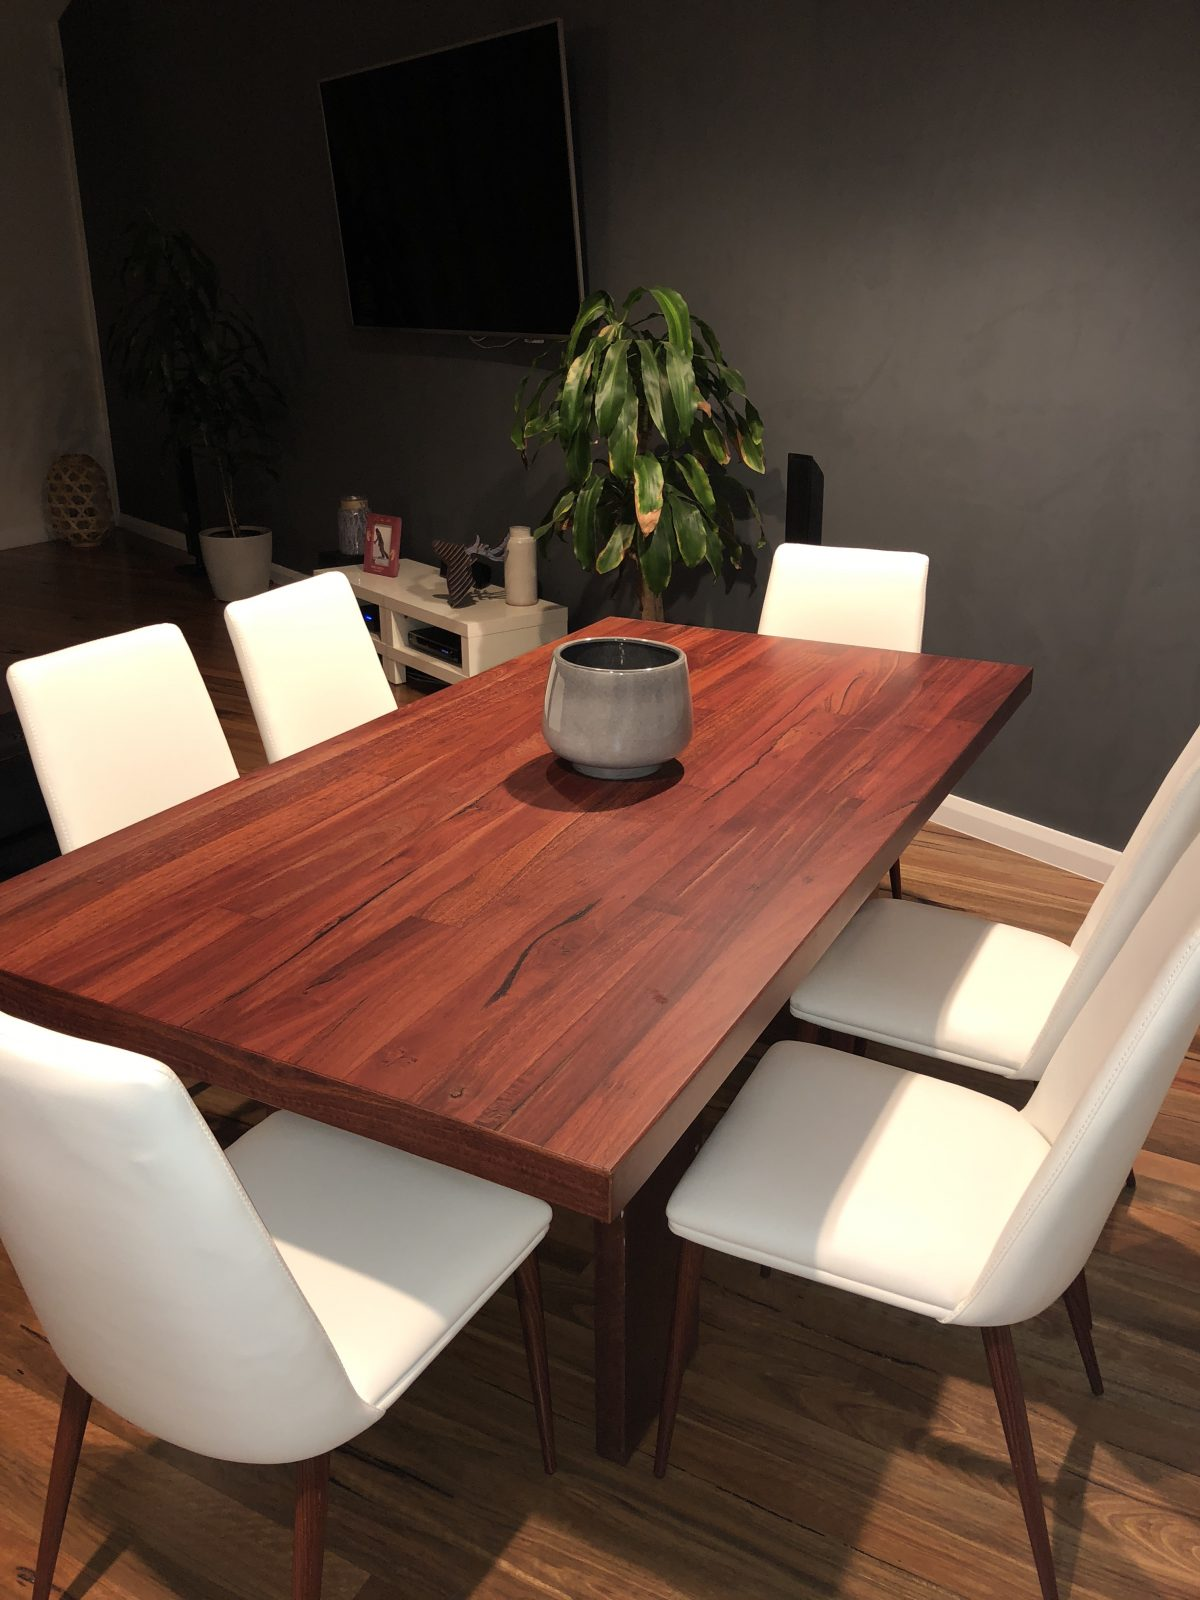 designer furniture - solid Australian Hardwqood dining table - Grey Gum by Timber Floors Pty Ltd